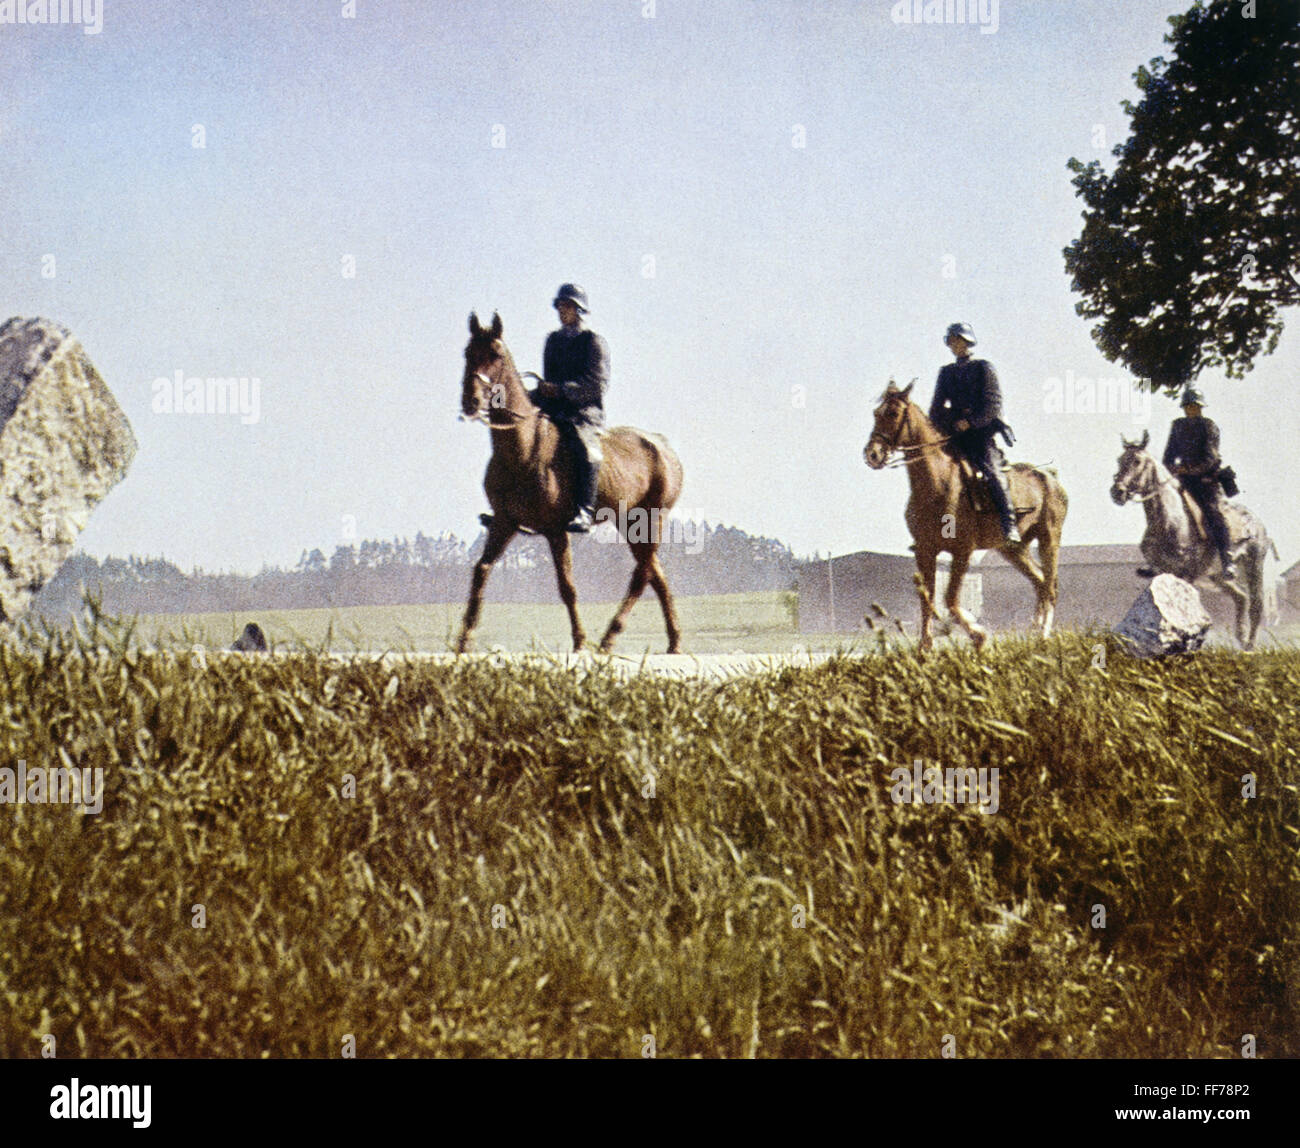 events, Second World War / WWII, German Wehrmacht, mounted reconnaissance patrol, circa 1941, Additional-Rights - Stock Image